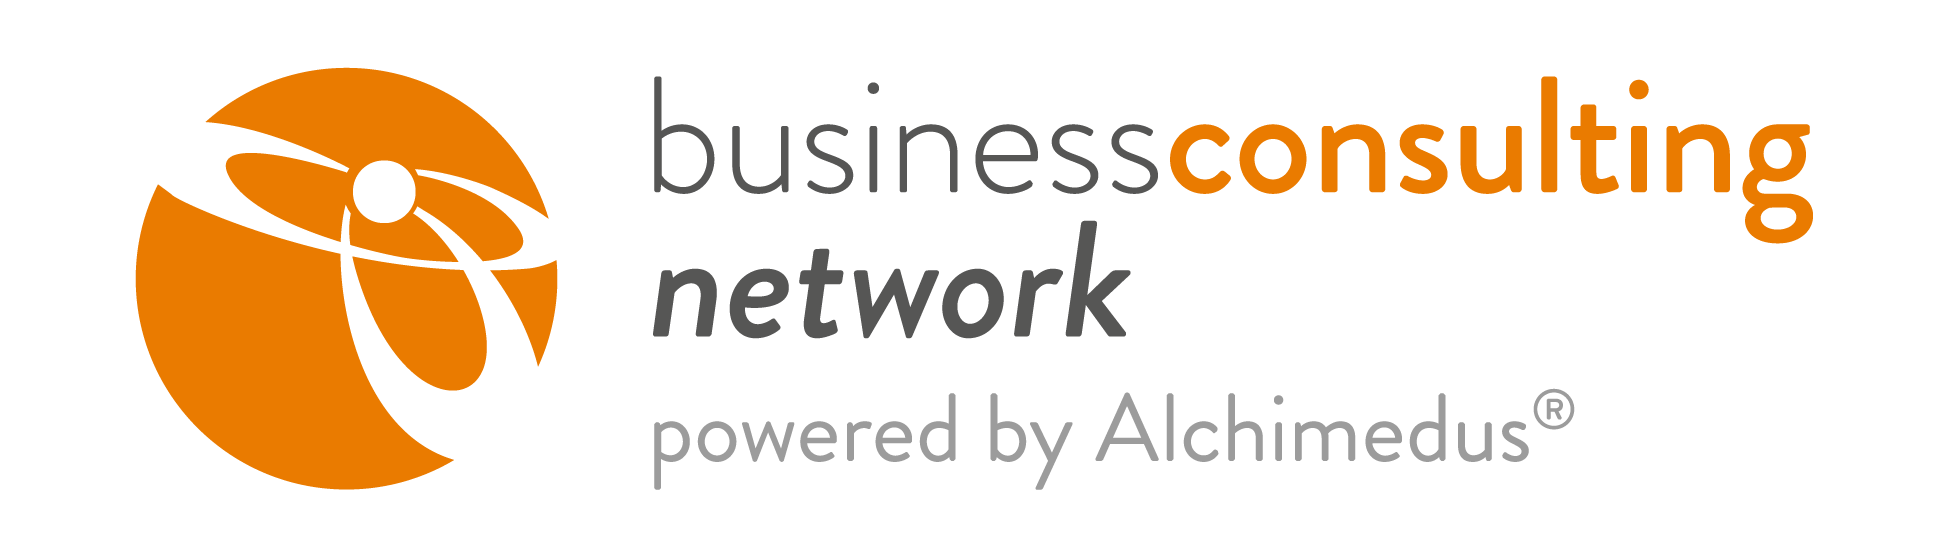 business-consulting-network